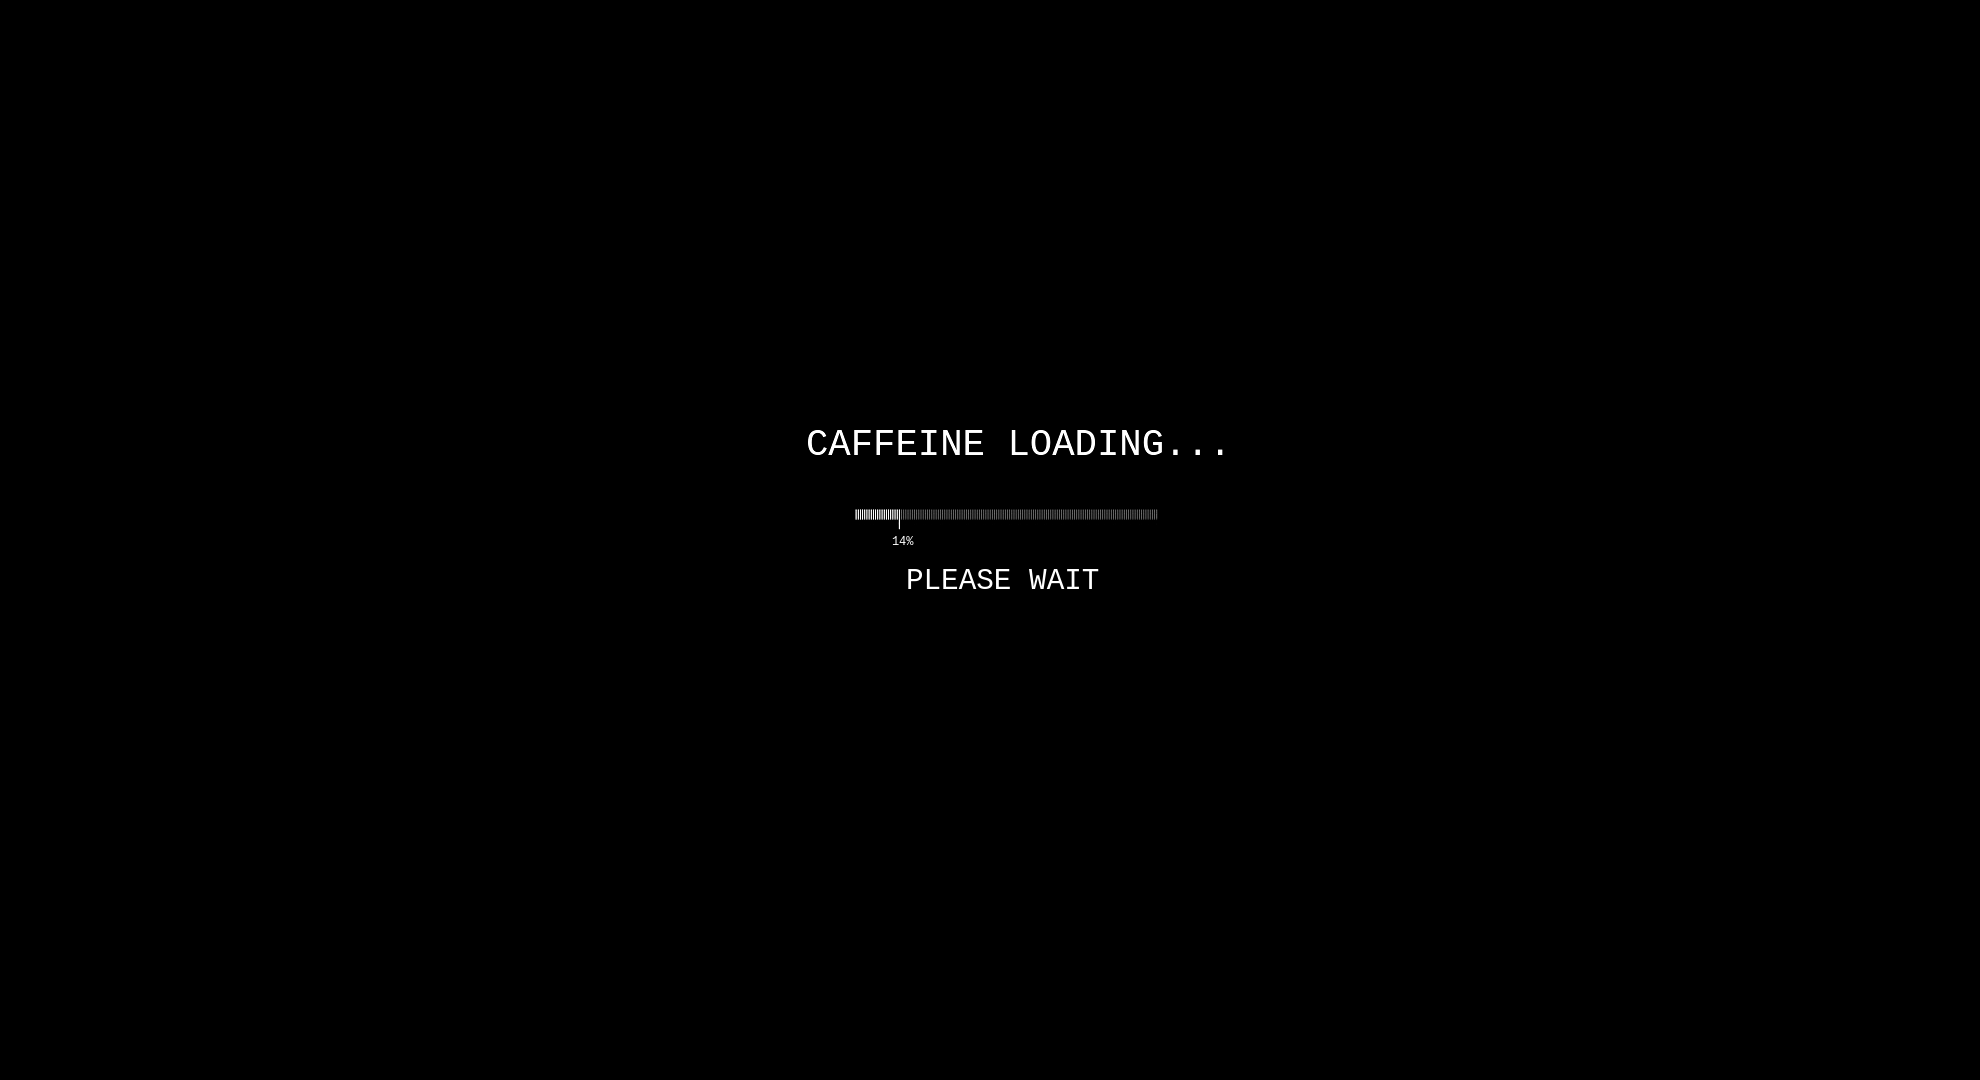 Caffeine Loading Please Wait Computer Wallpapers Desktop Backgrounds 1980x1080 Id 428151 Computer Wallpaper Free Wallpaper Wallpaper